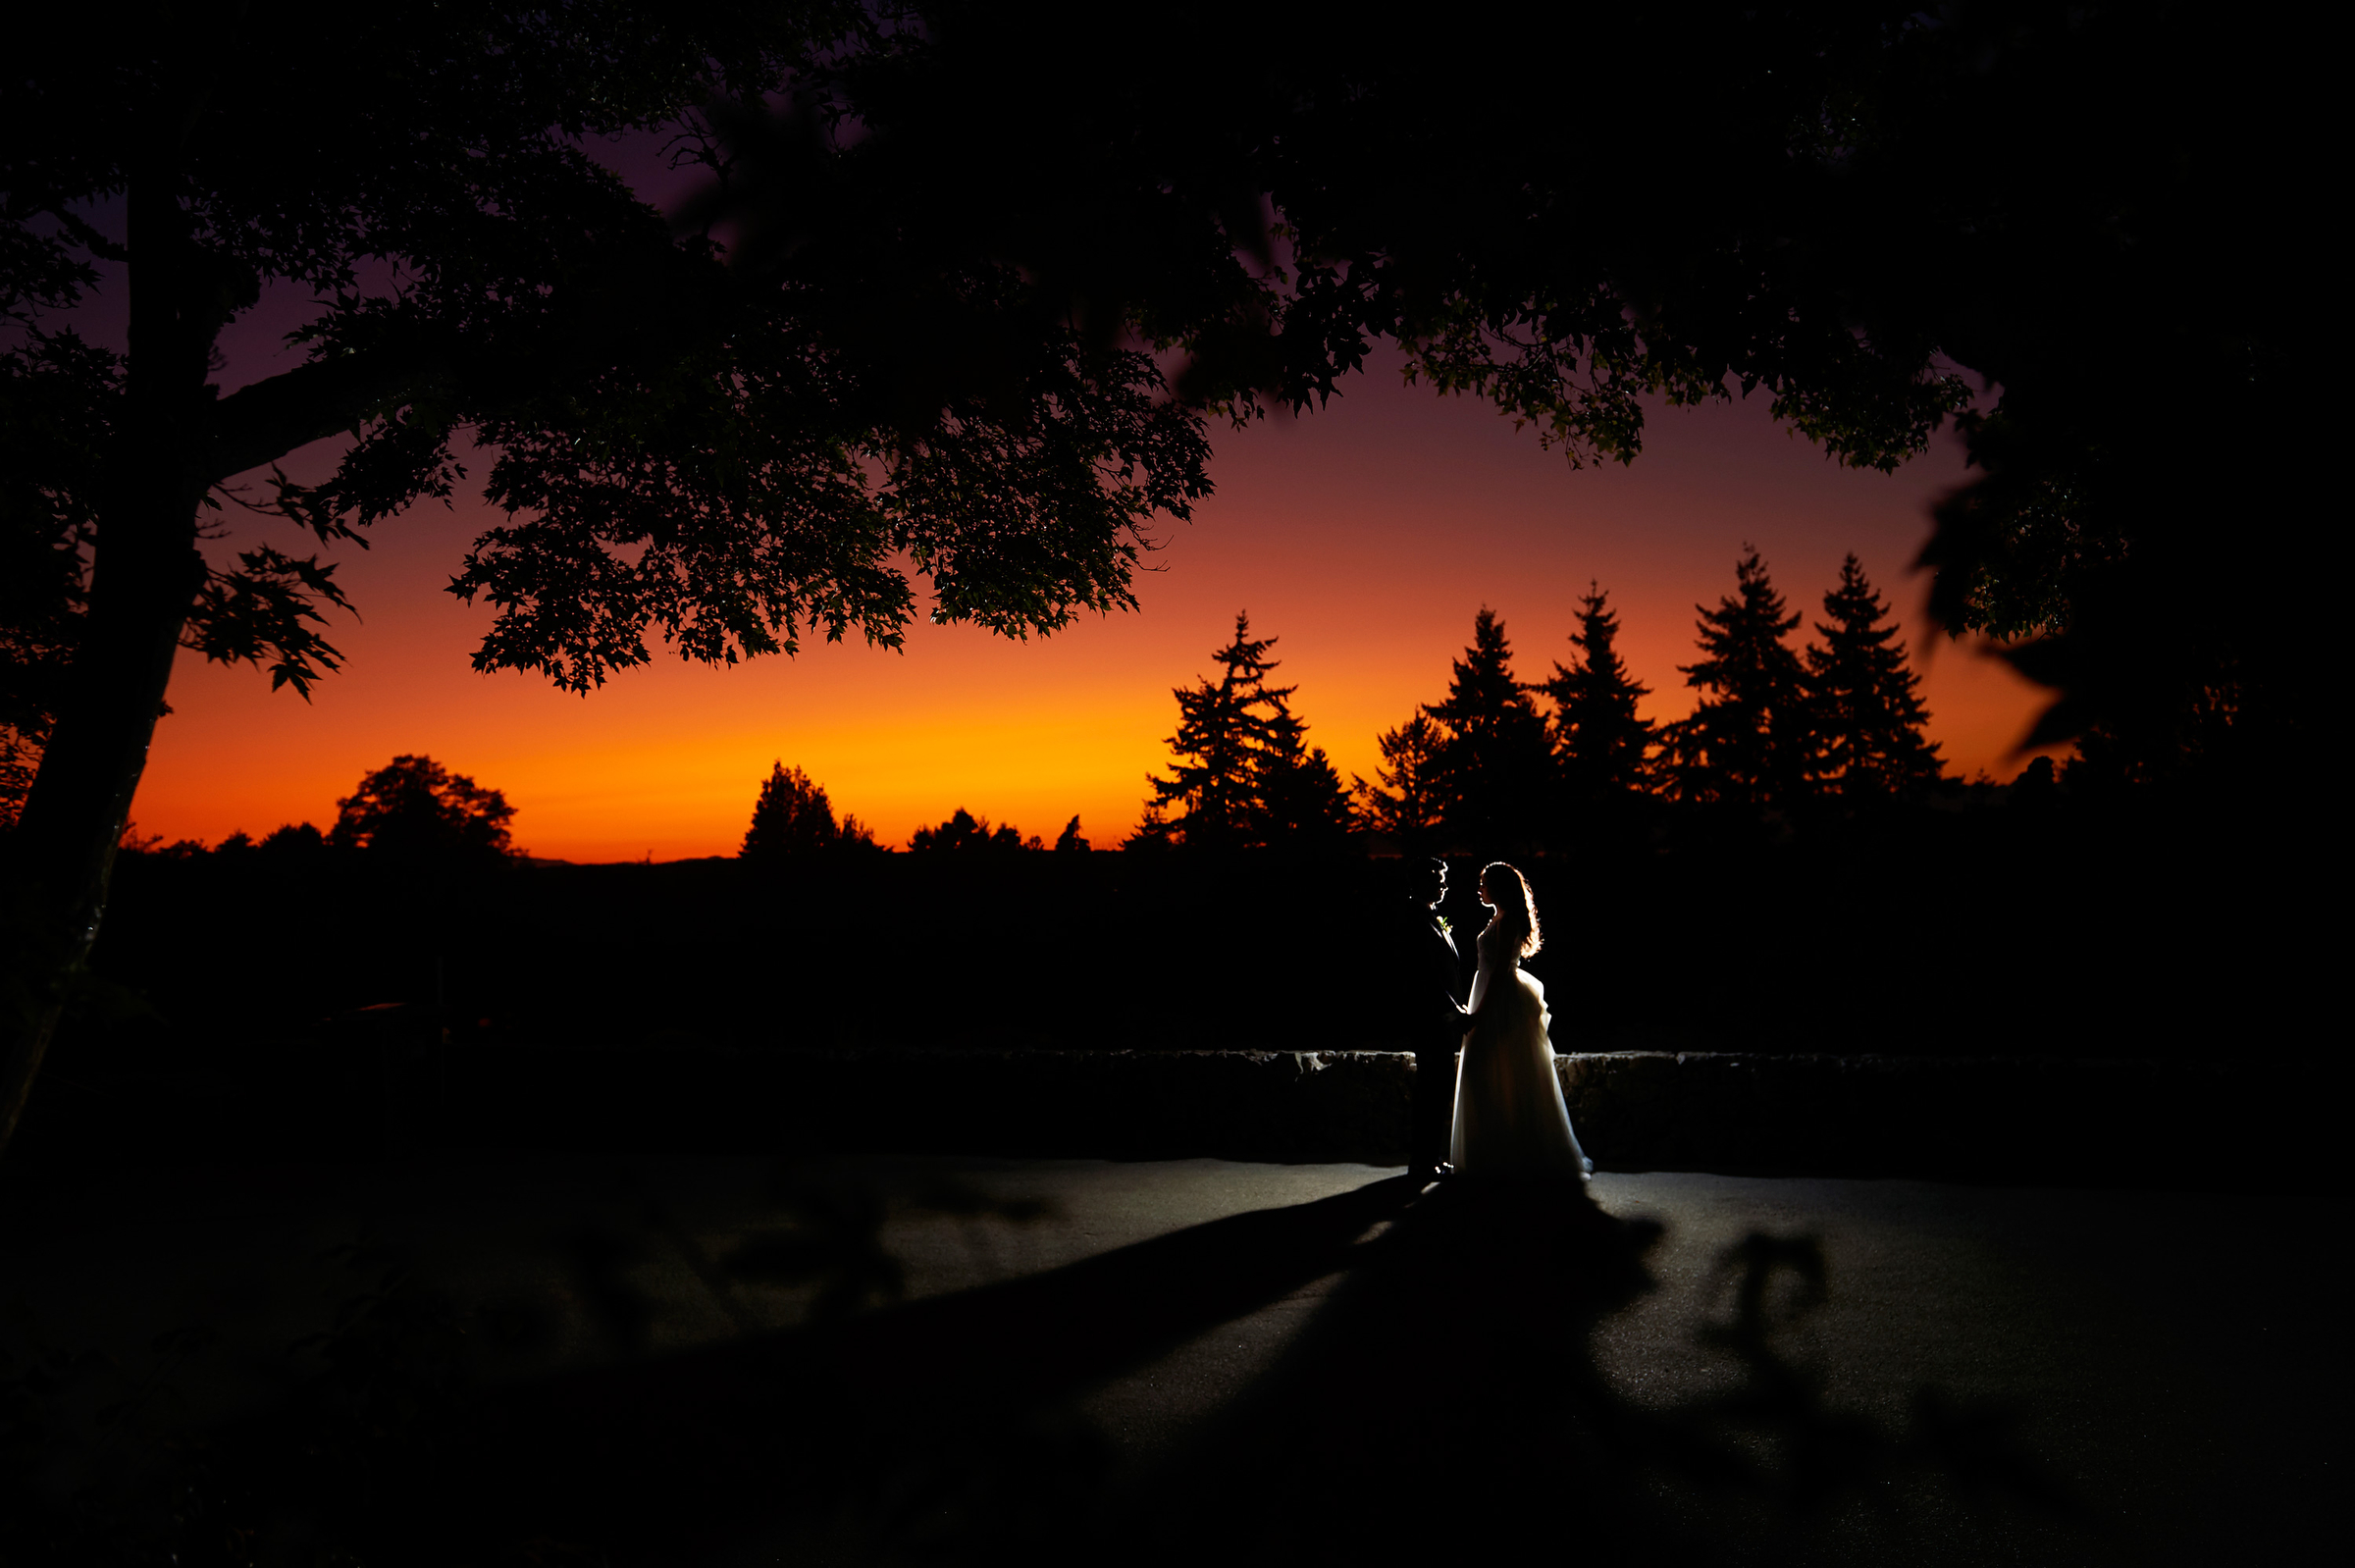 Highlighted couple silhouette against sunset - photo by Jozef Povazan Photography